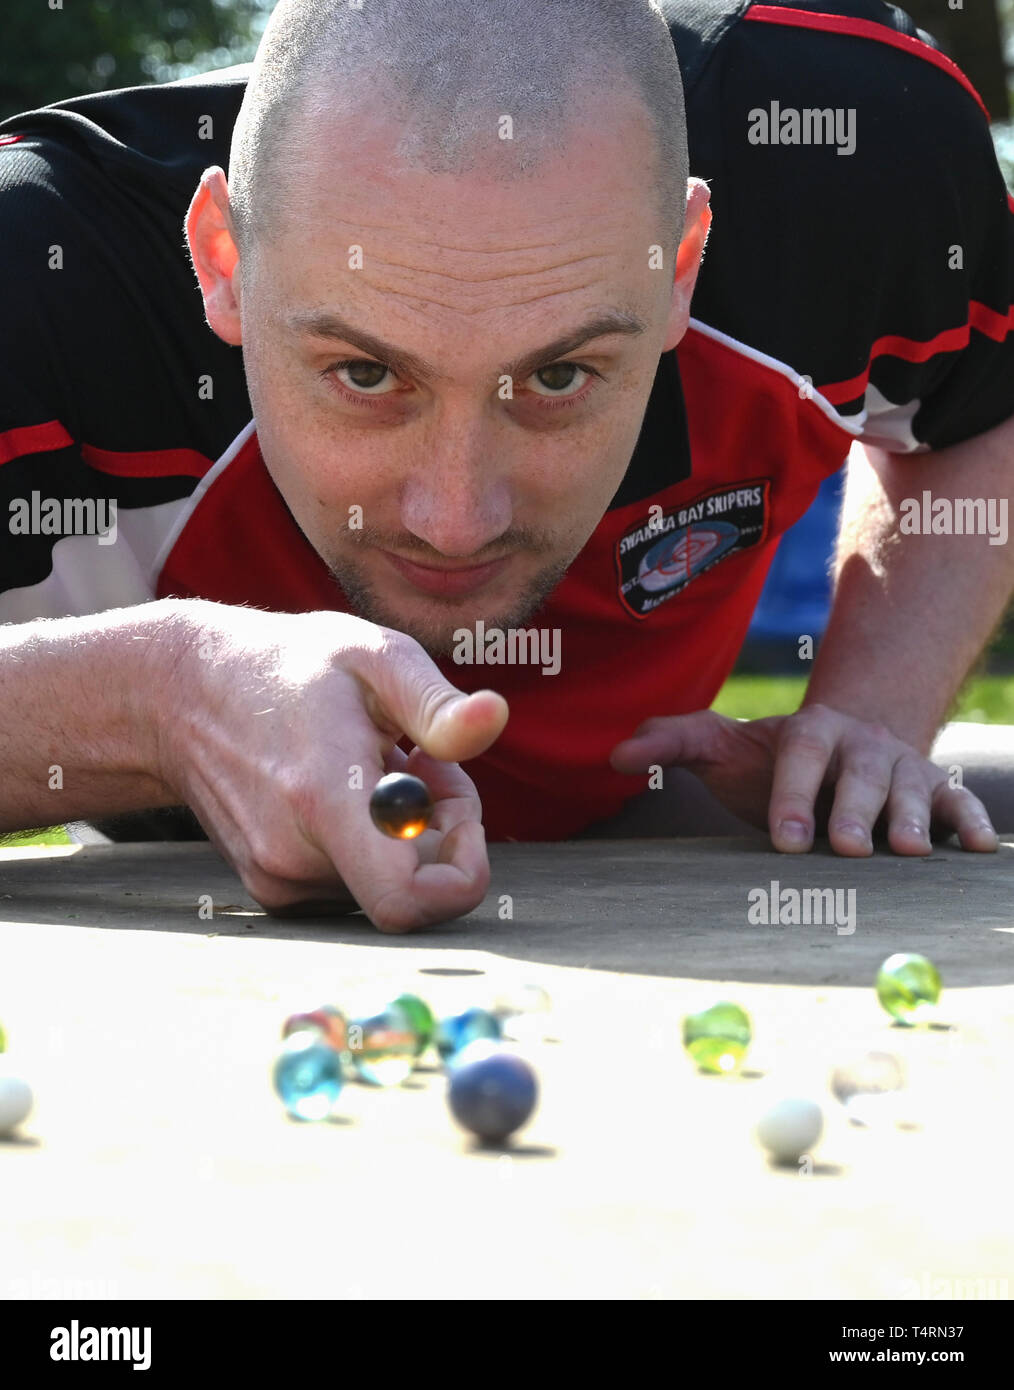 Crawley Sussex, UK. 19th Apr, 2019. Lloyd Evans from the Swansea Bay Packers competing in the World Marbles Championship held at The Greyhound pub at Tinsley Green near Crawley in Sussex . The annual event has been held on Good Friday every year since the 1930s and is open to players from around the world Credit: Simon Dack/Alamy Live News Stock Photo